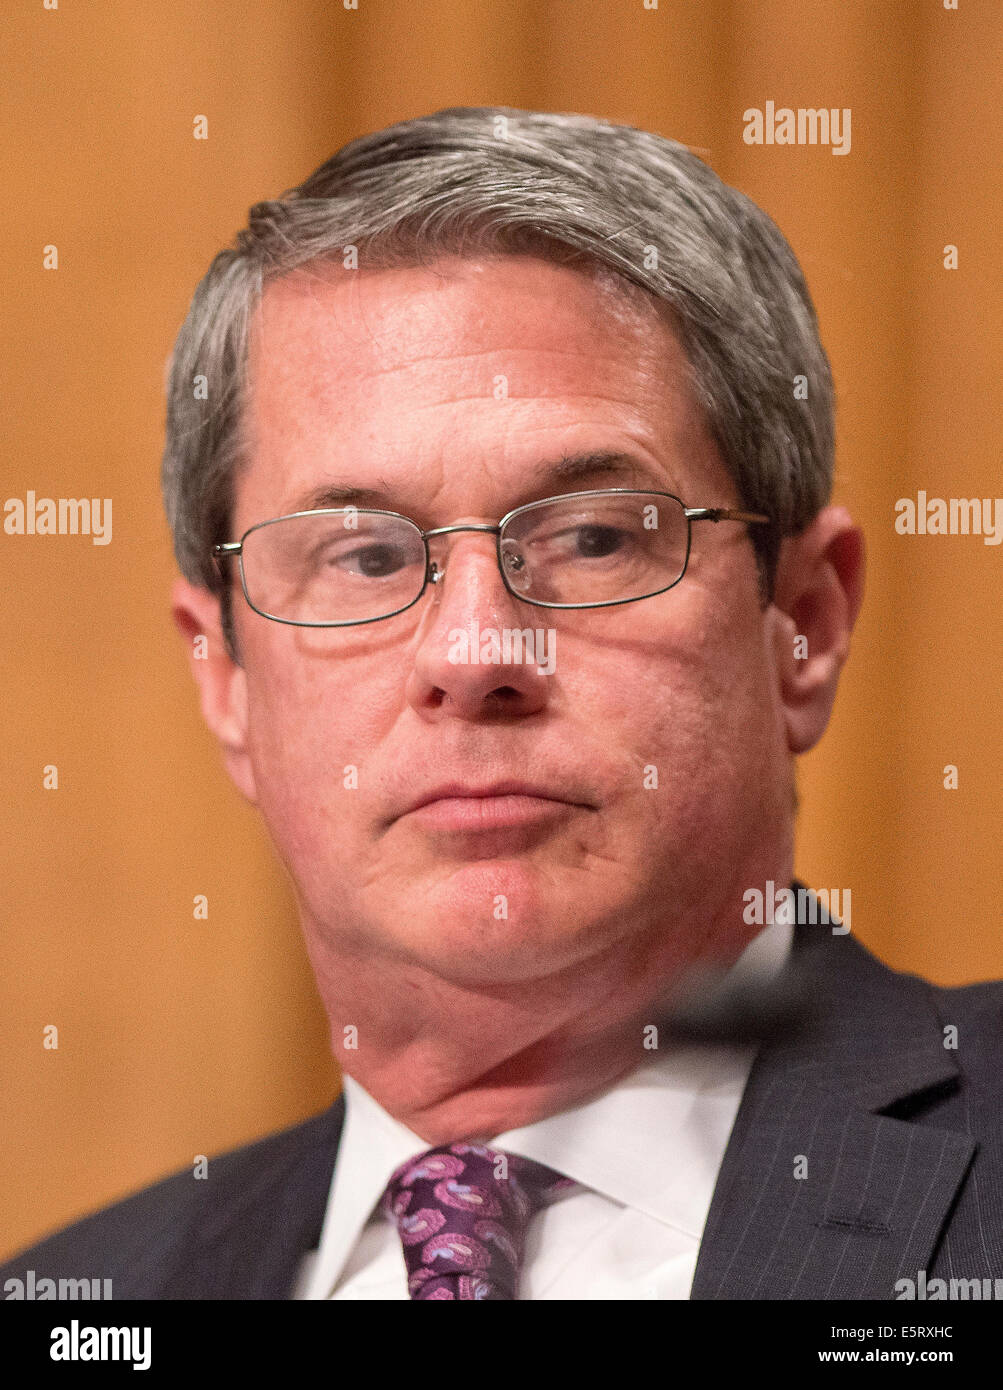 United States Senator David Vitter (Republican of Louisiana), a member of the U.S. Senate Committee on Banking, - Stock Image